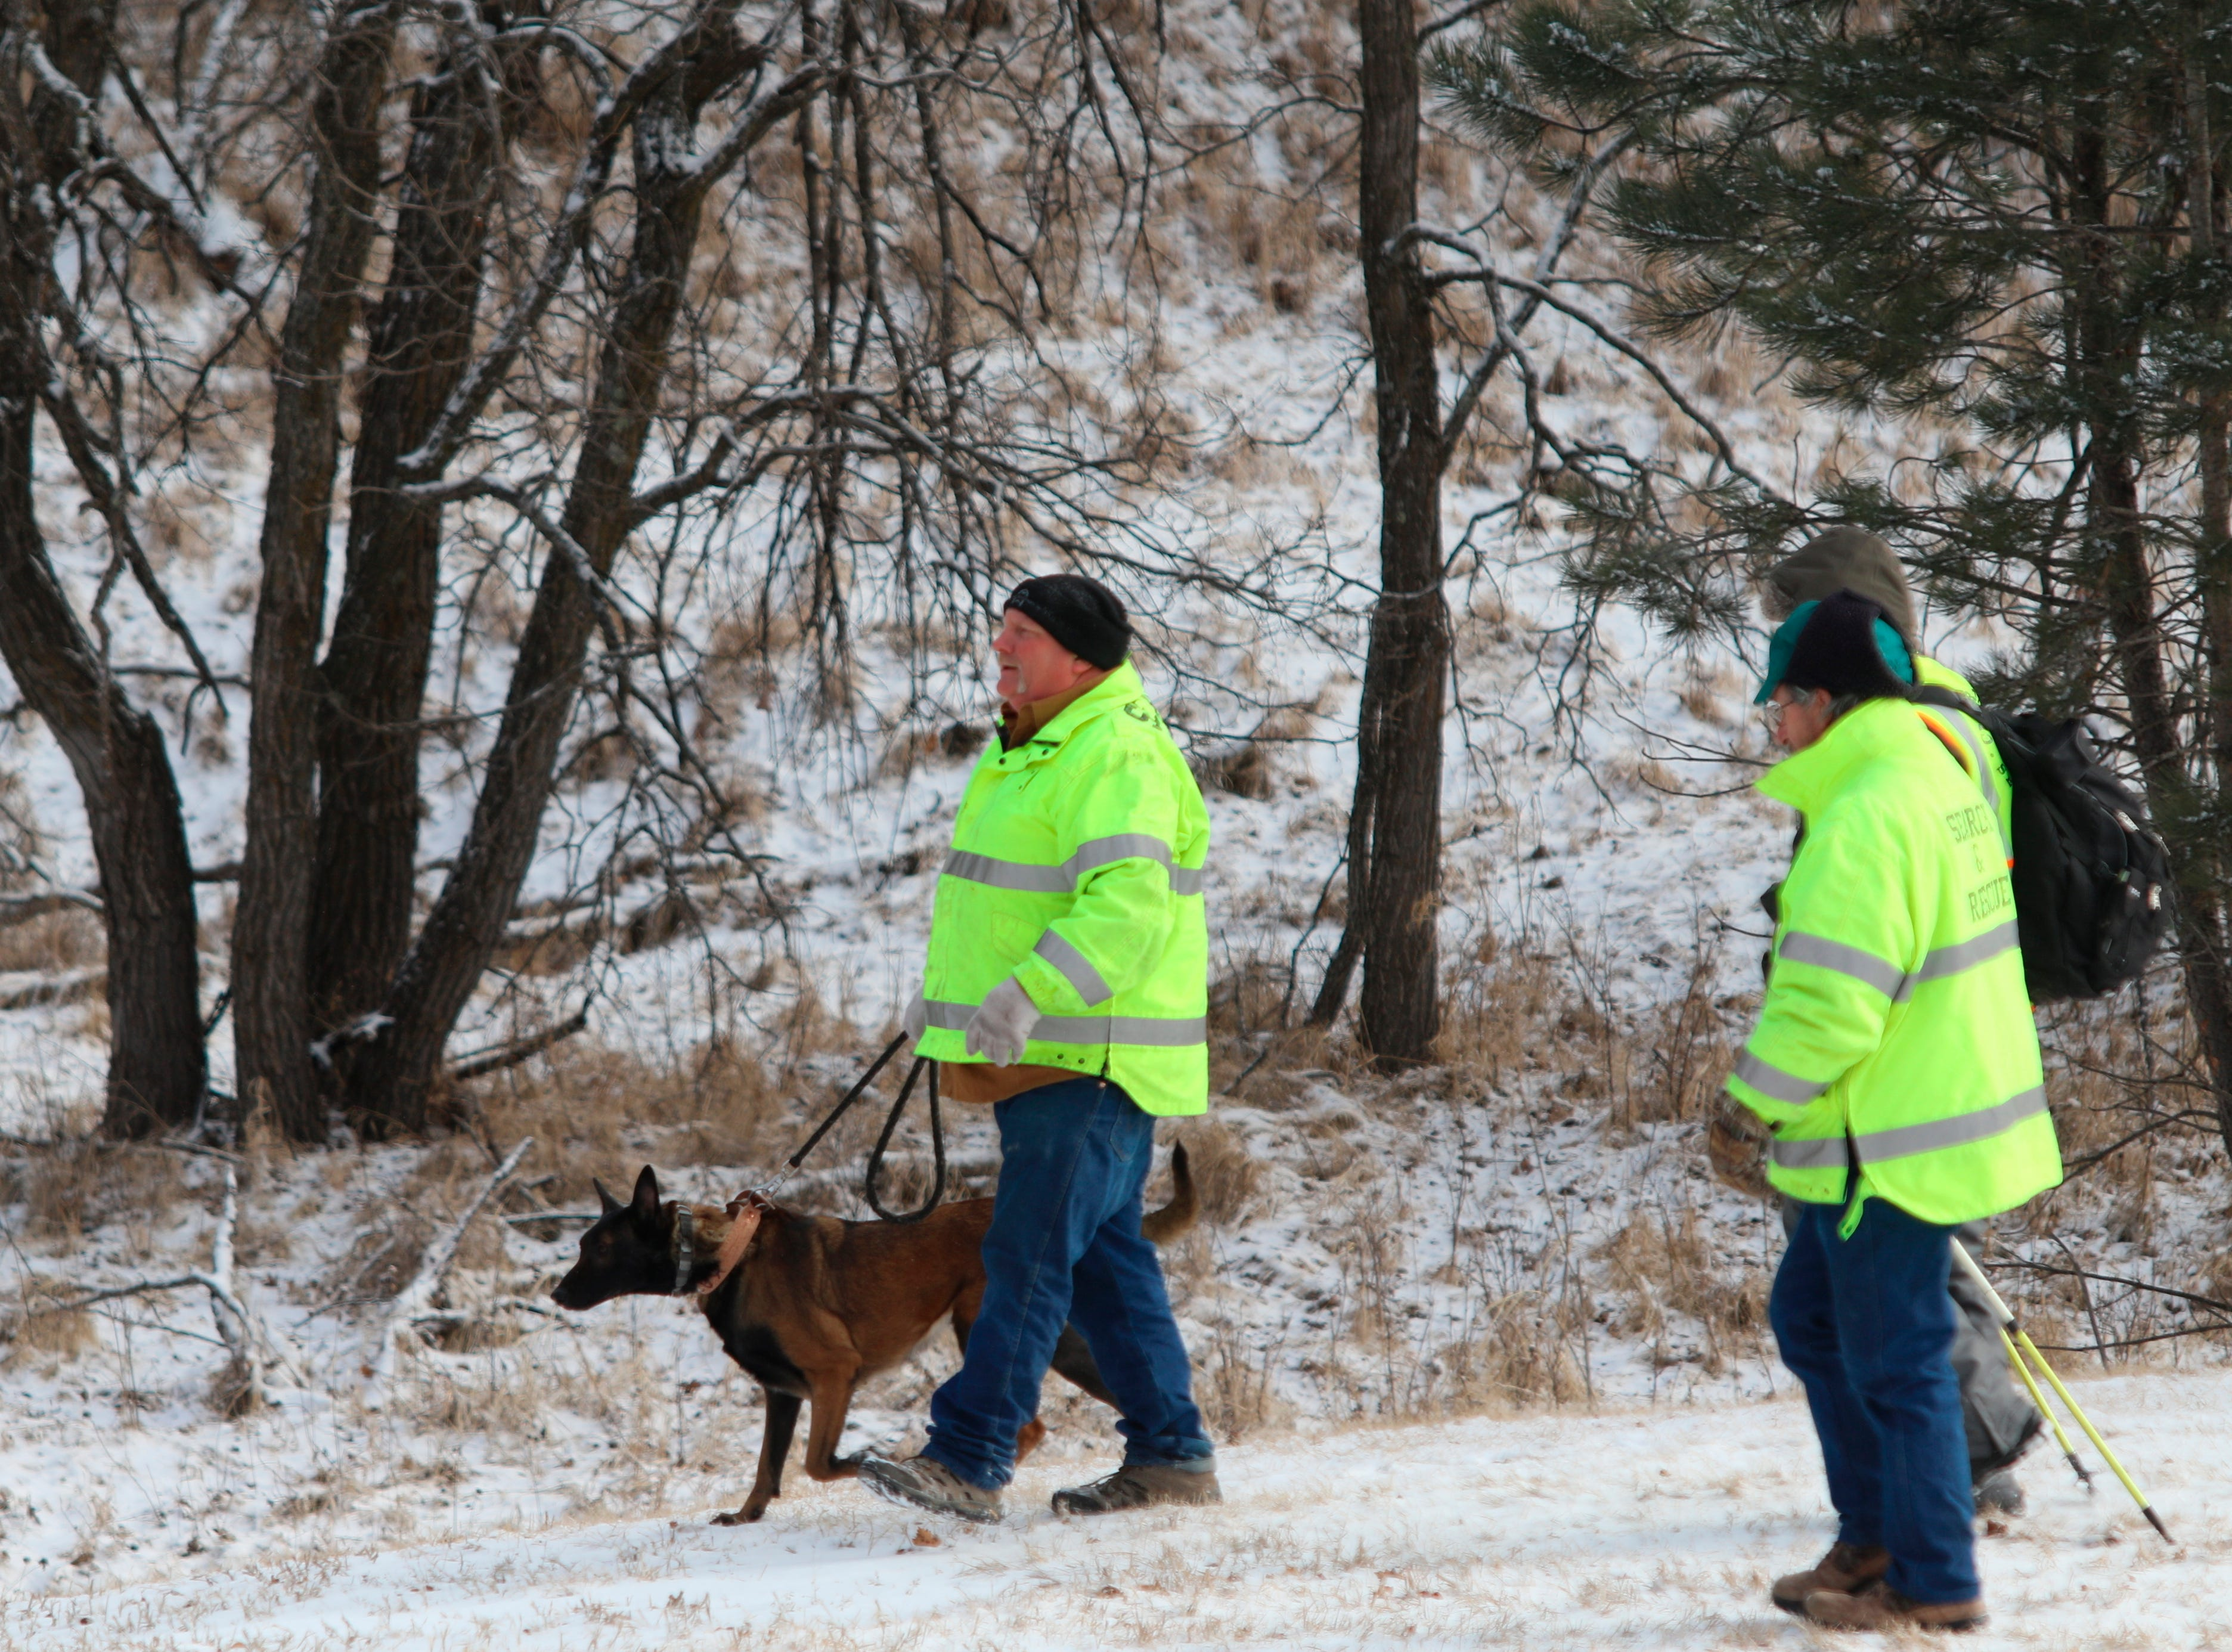 A dog helps search for Serenity Dennard, 9, Monday, Feb. 4, 2019, near Rockerville, S.D. Authorities say that the girl ran away from staff at a residential youth home. (Arielle Zionts/Rapid City Journal via AP)